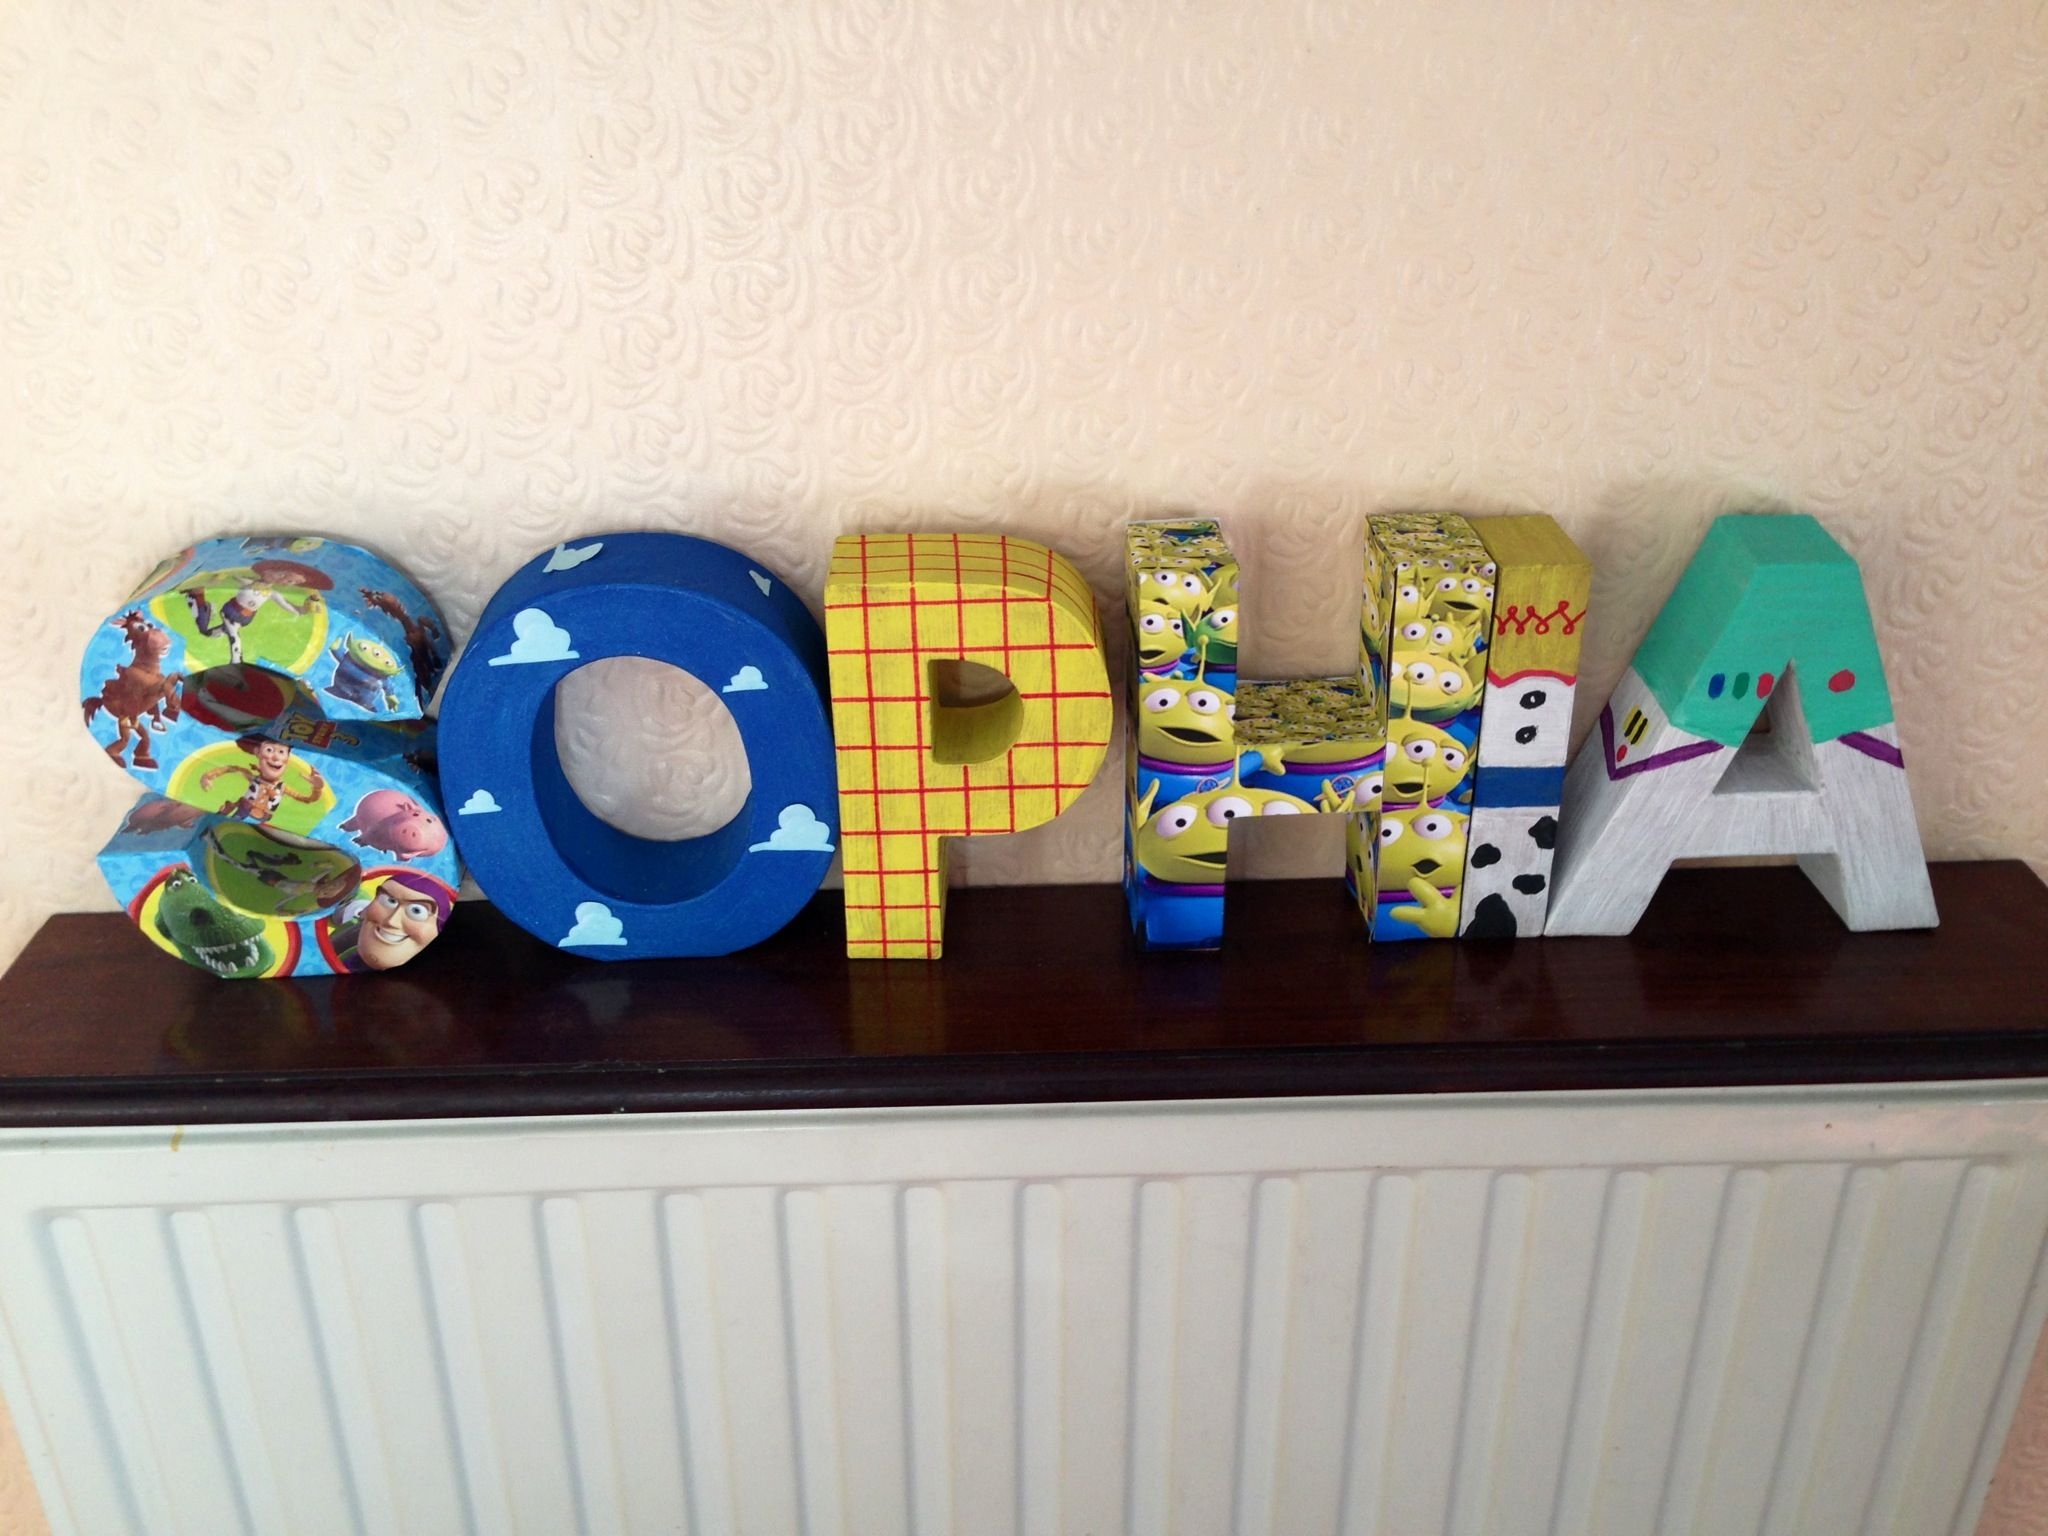 Toy story letters. Toy story letters   Some day   Pinterest   Toy  Birthdays and Toy